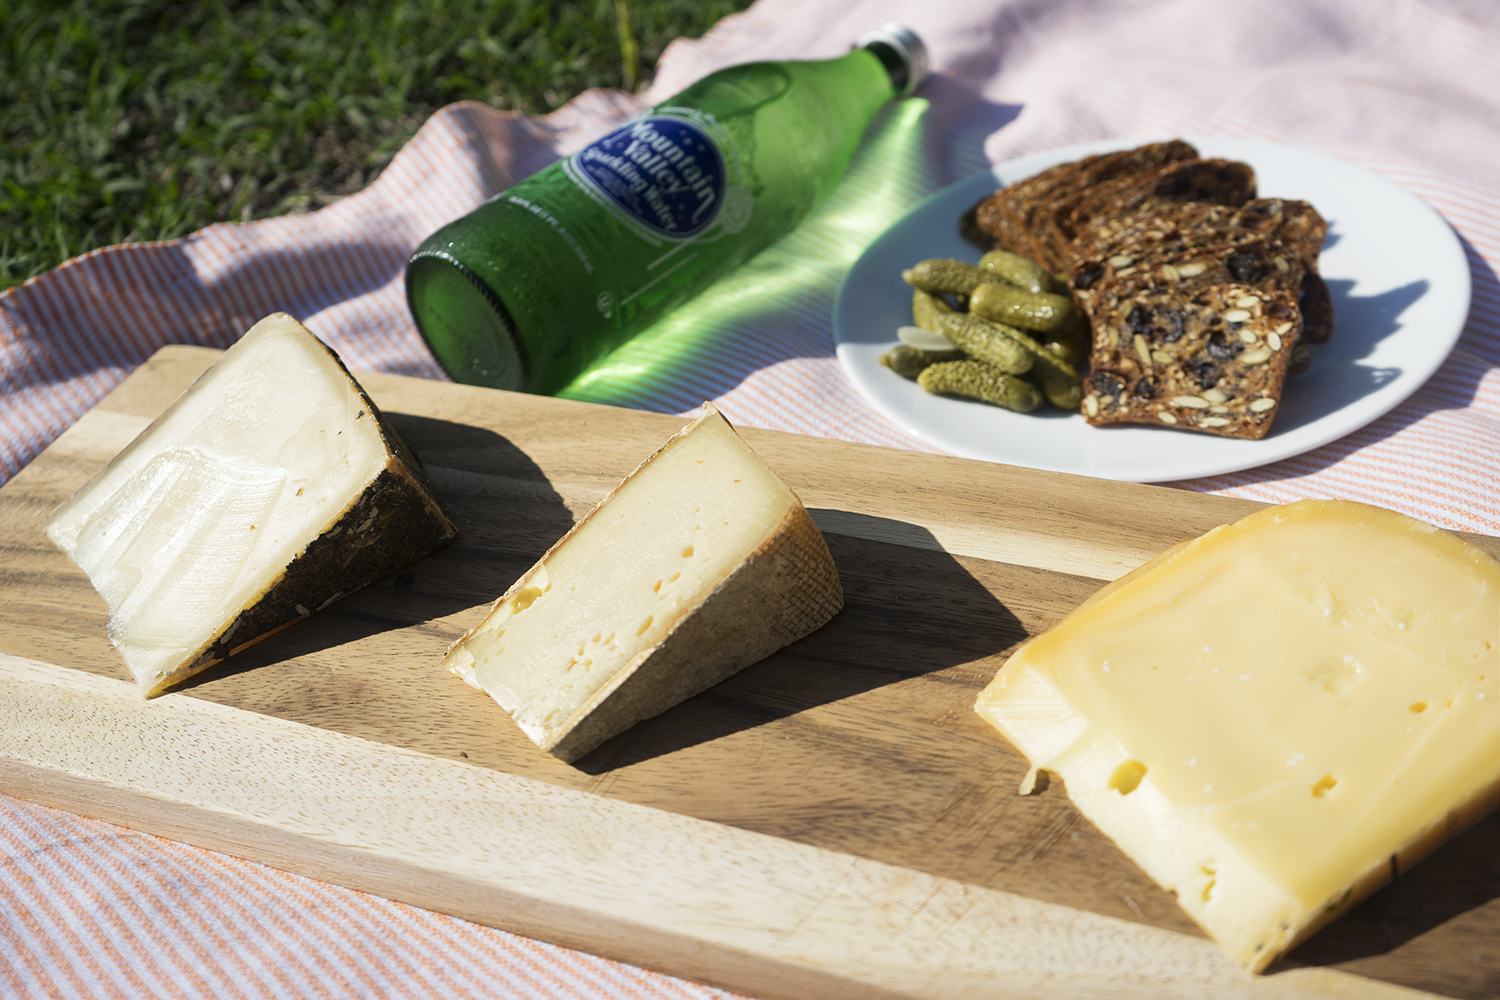 From Left to Right: Heublumen (Switzerland), Tomme de Savoie (France), Oorsprong (Holland)